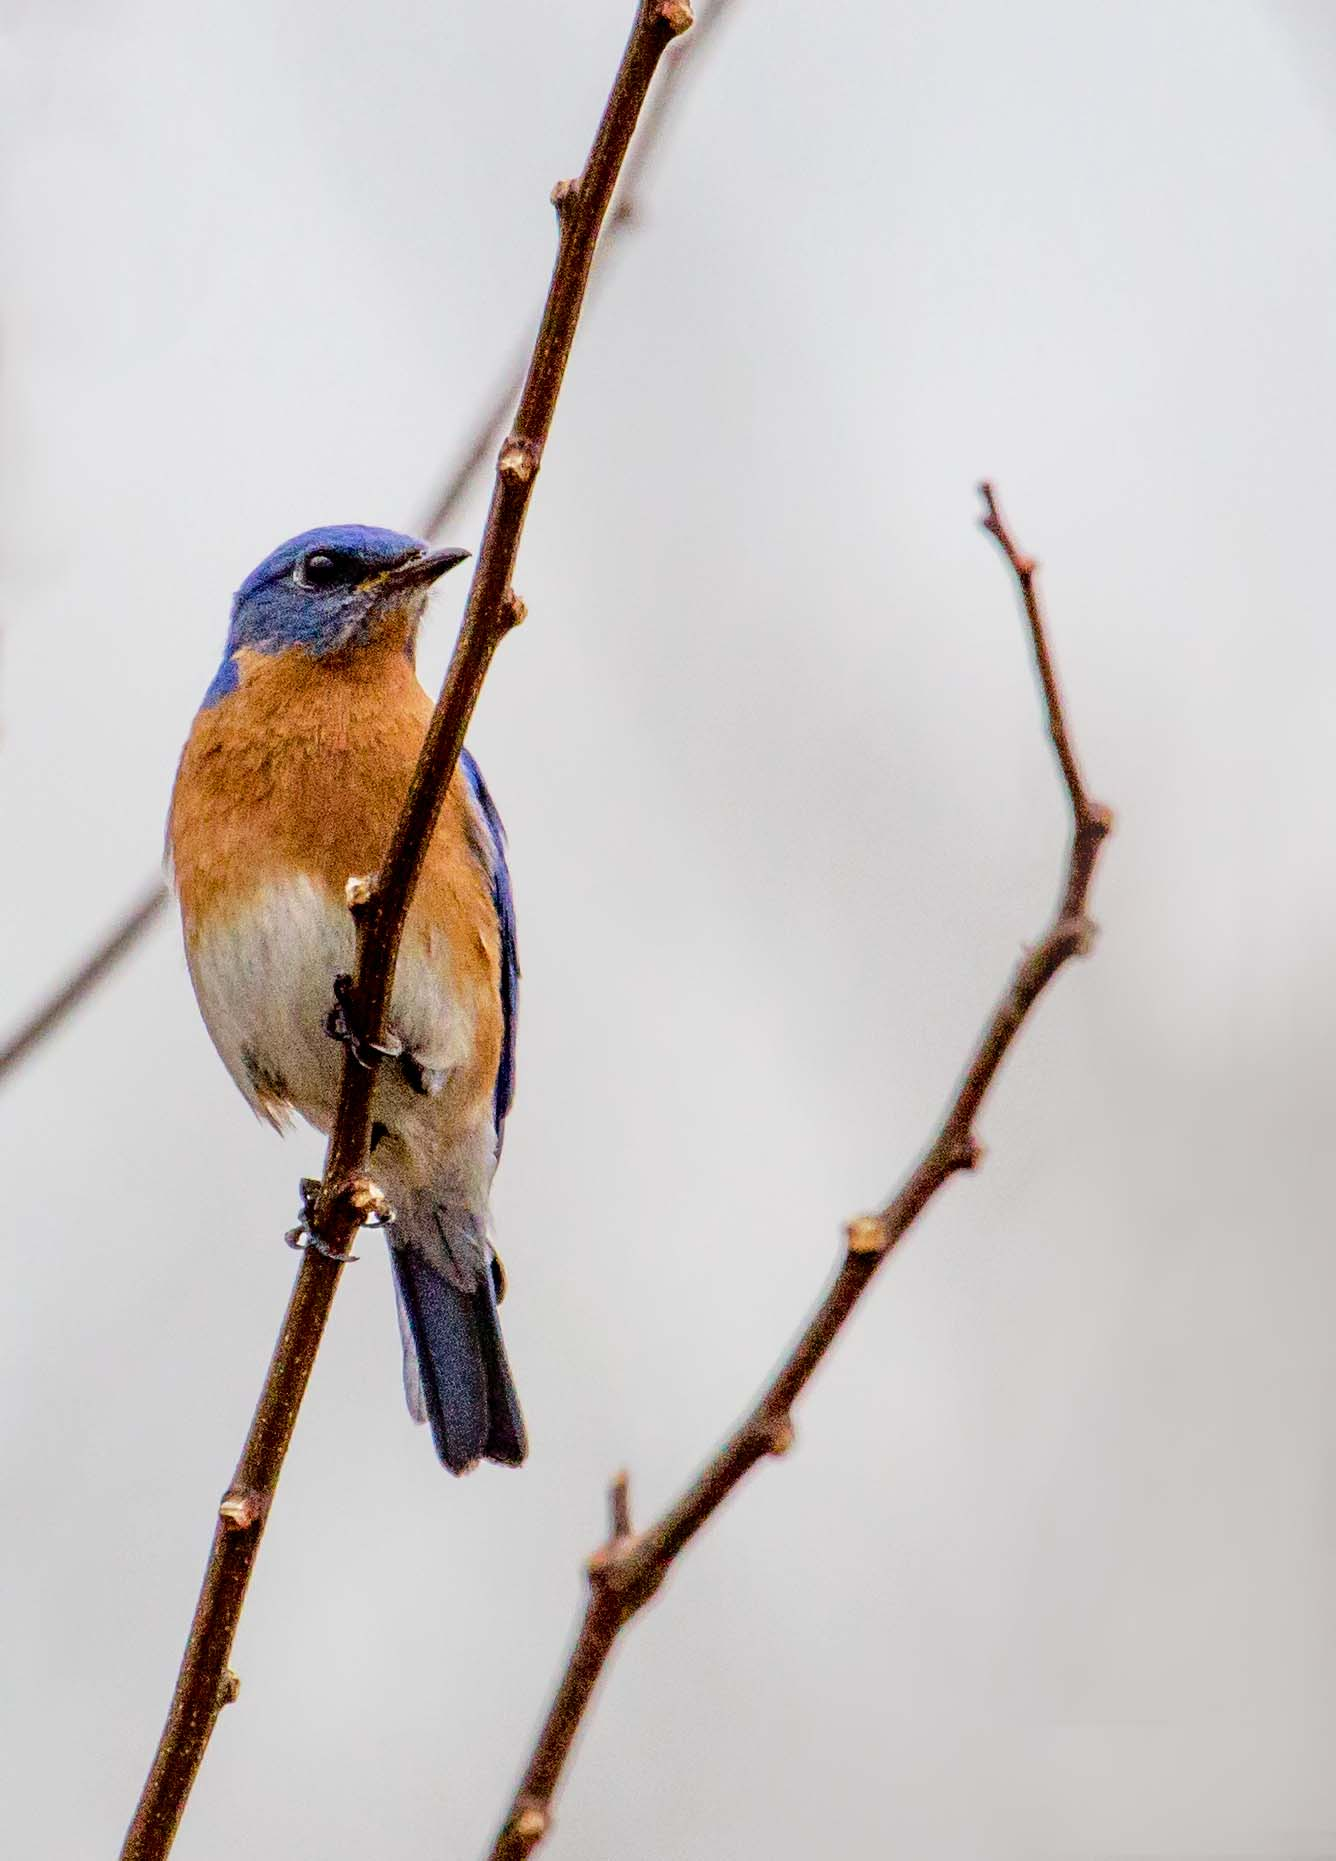 Eastern Bluebird.  Copyright, Esther Kowal-Bukata, 2014.  All rights reserved.